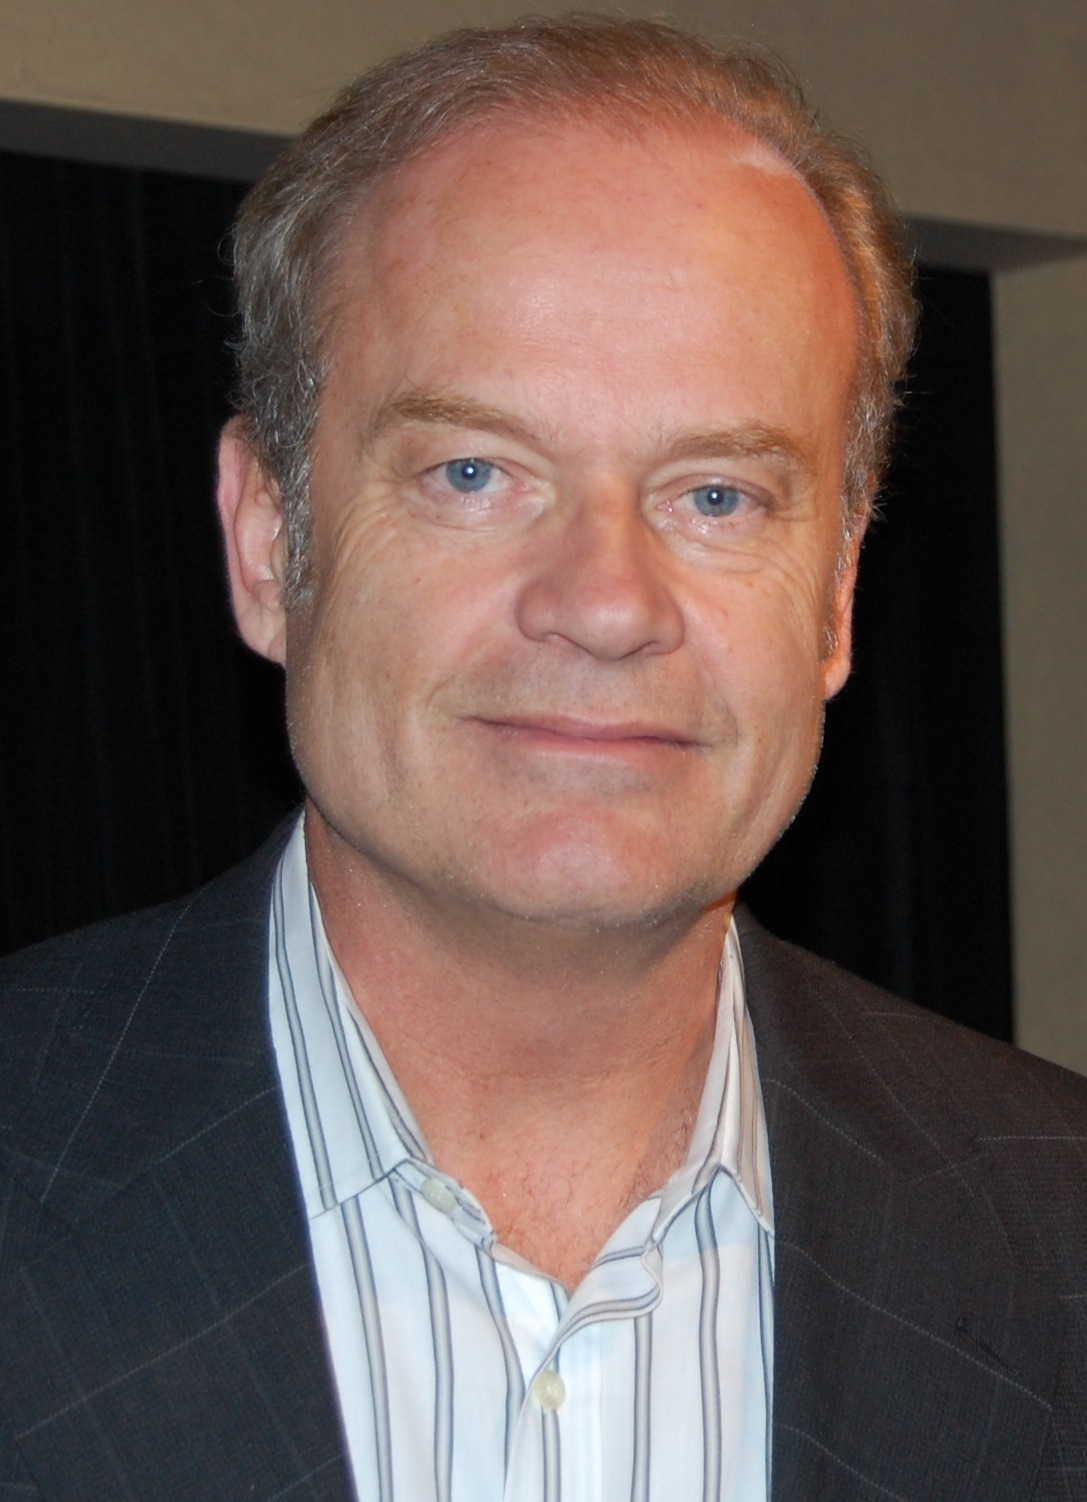 Amazon picks up <i>The Last Tycoon</i> adaptation, casts Kelsey Grammer in lead